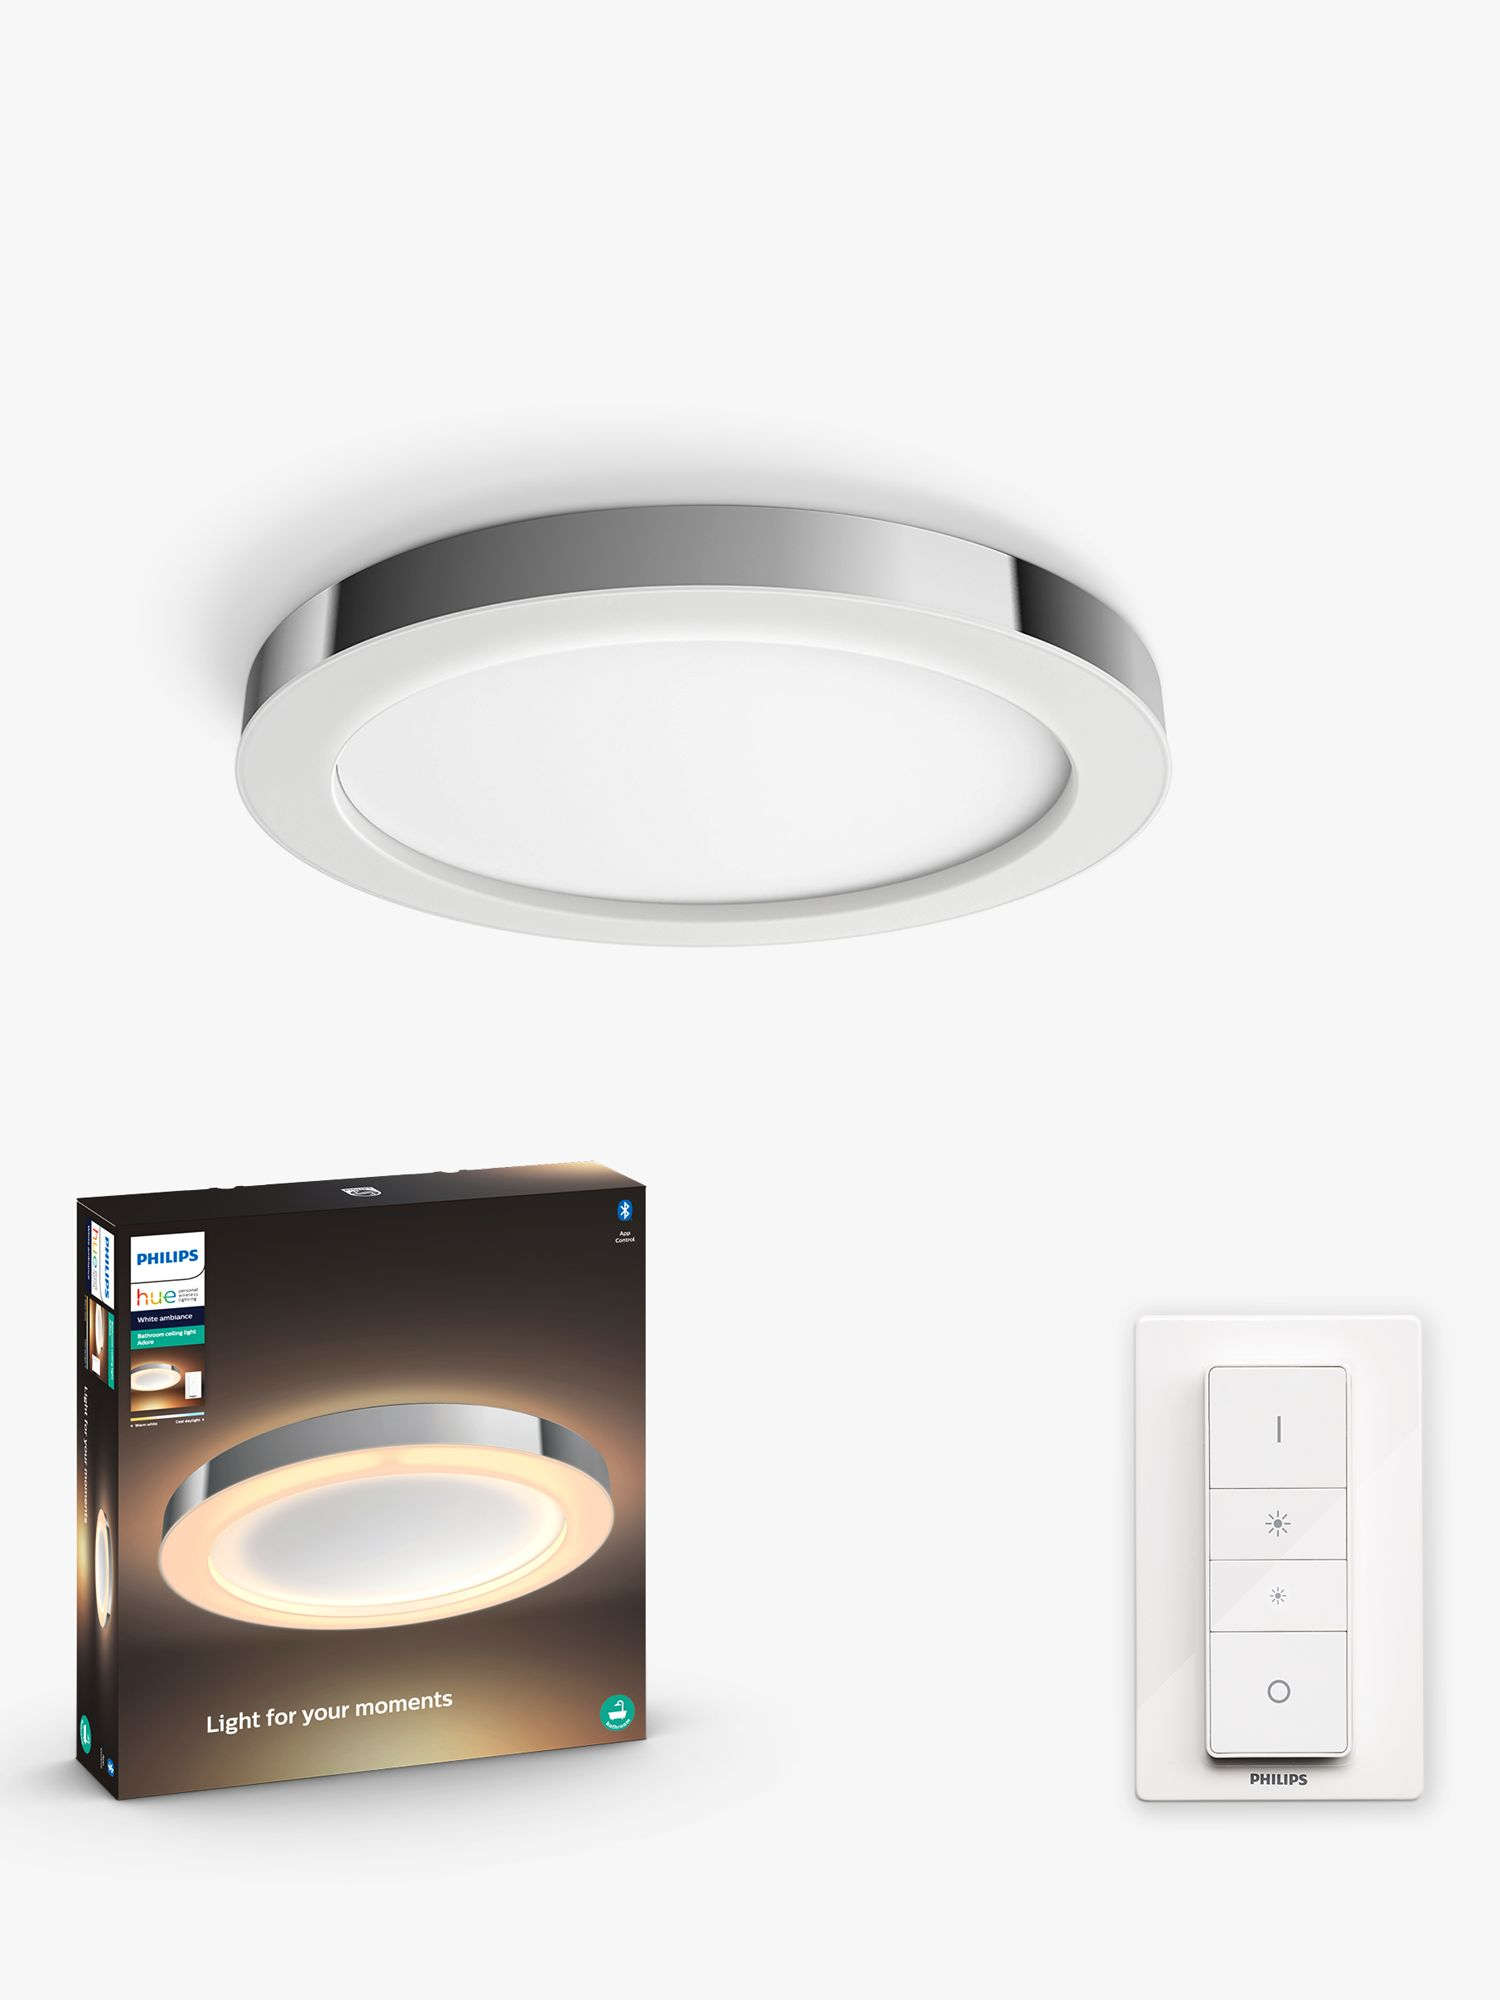 Philips Hue White Ambiance Adore Led Semi Flush Bathroom Ceiling Light With Bluetooth And Dimmer Switch Chrome At John Lewis Partners